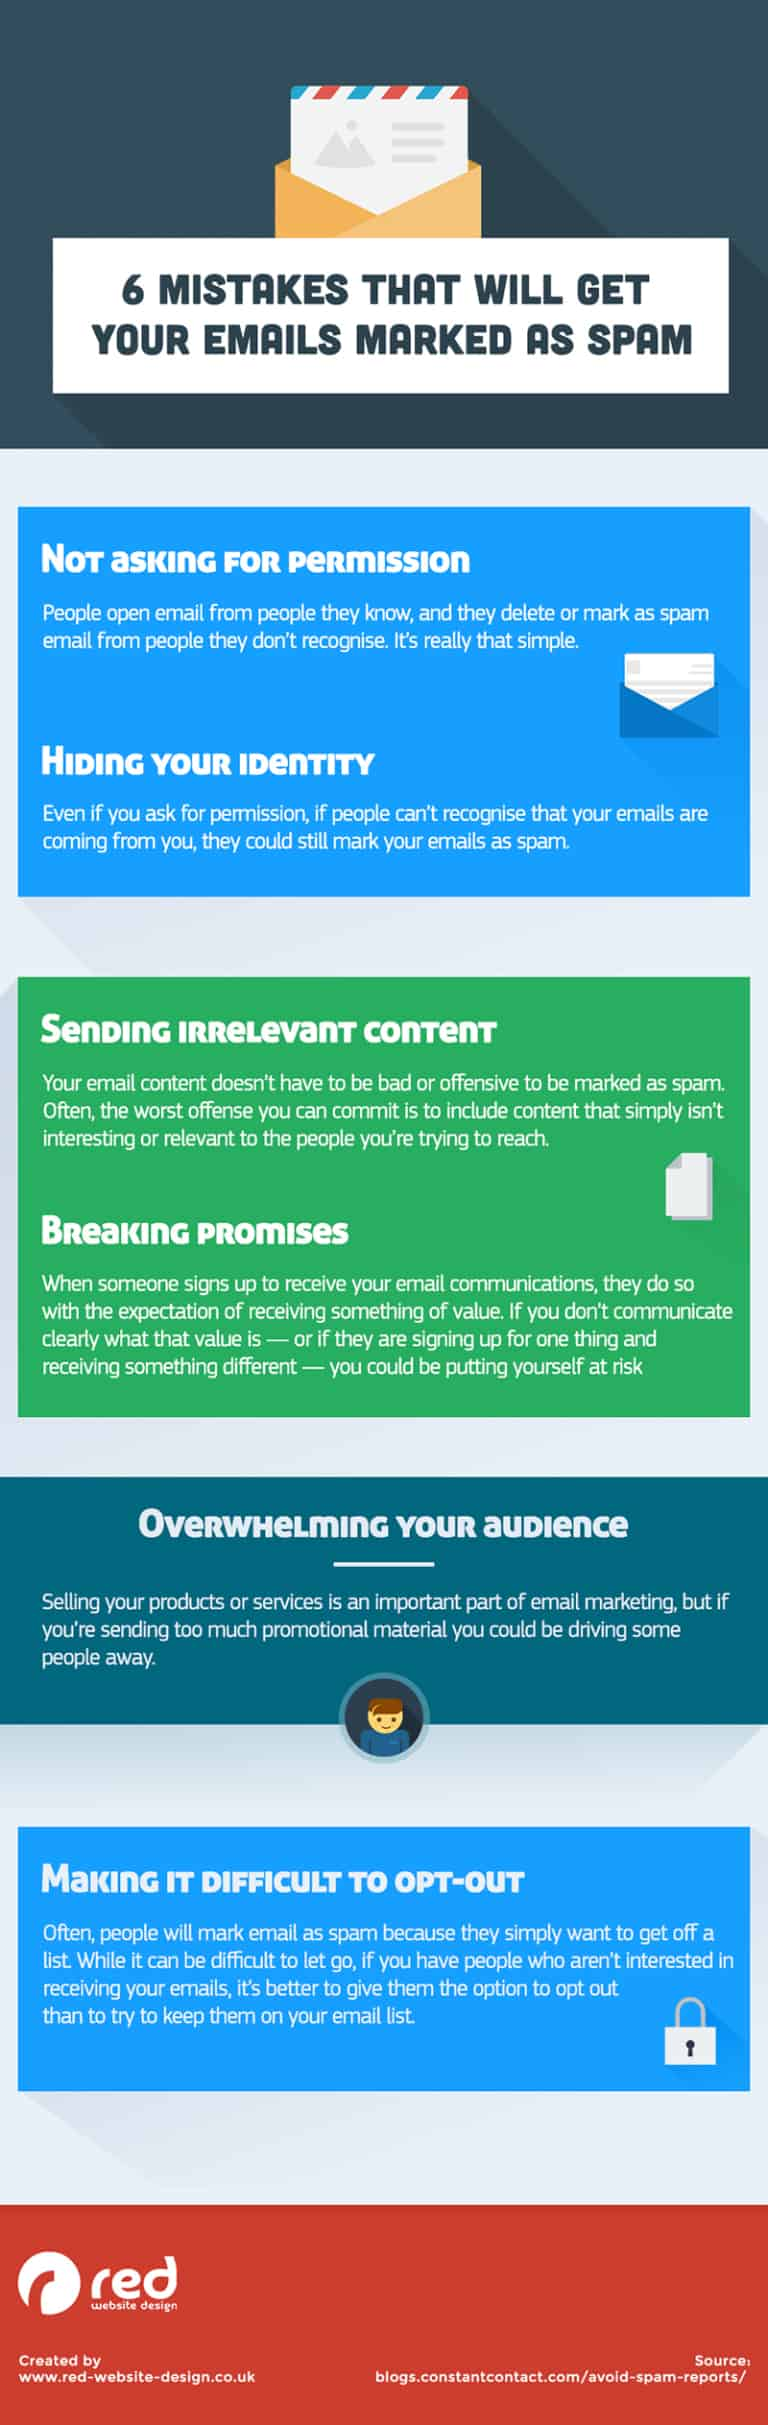 Infographic lists a range of common email marketing missteps